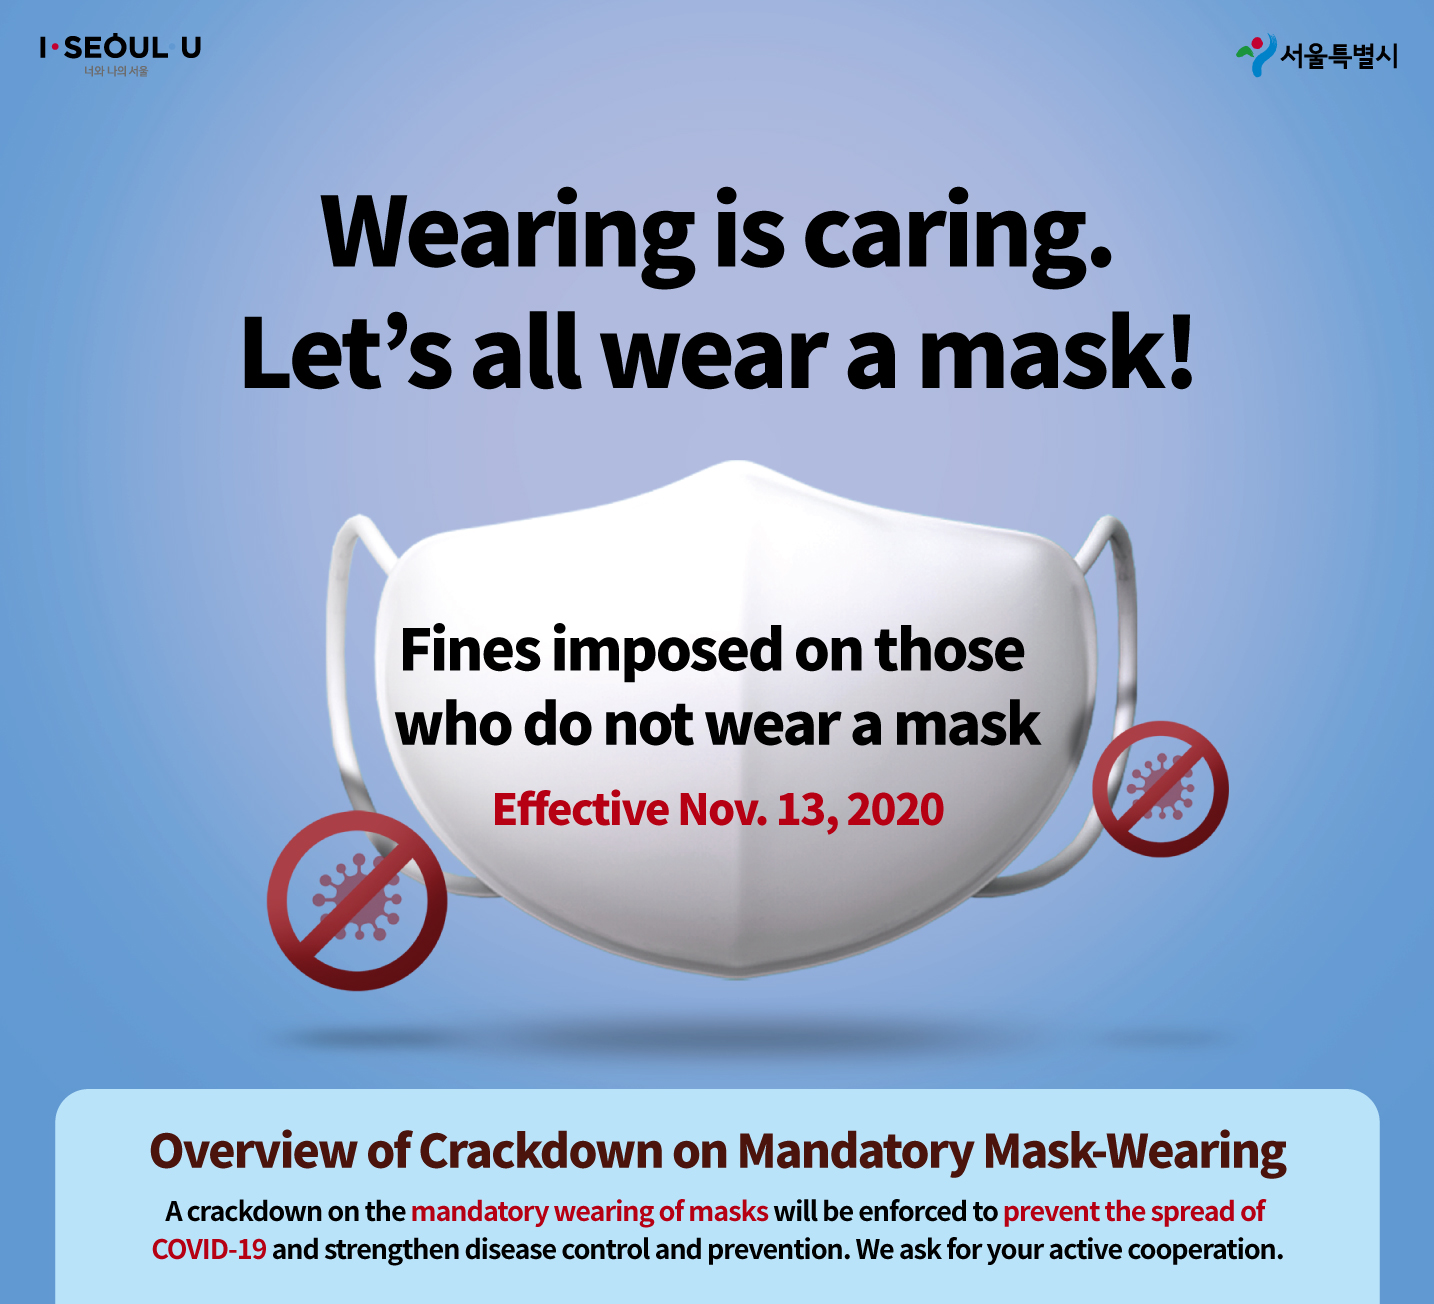 Wearing is caring. Let's all wear a mask! Fines imposed on those who do not wear a mask Effective Nov. 13, 2020 Overview of Crackdown on Mandatory Mask-Wearing A crackdown on the mandatory wearing of masks will be enforced to prevent the spread of COVID-19 and strengthen disease control and prevention. We ask for your active cooperation.